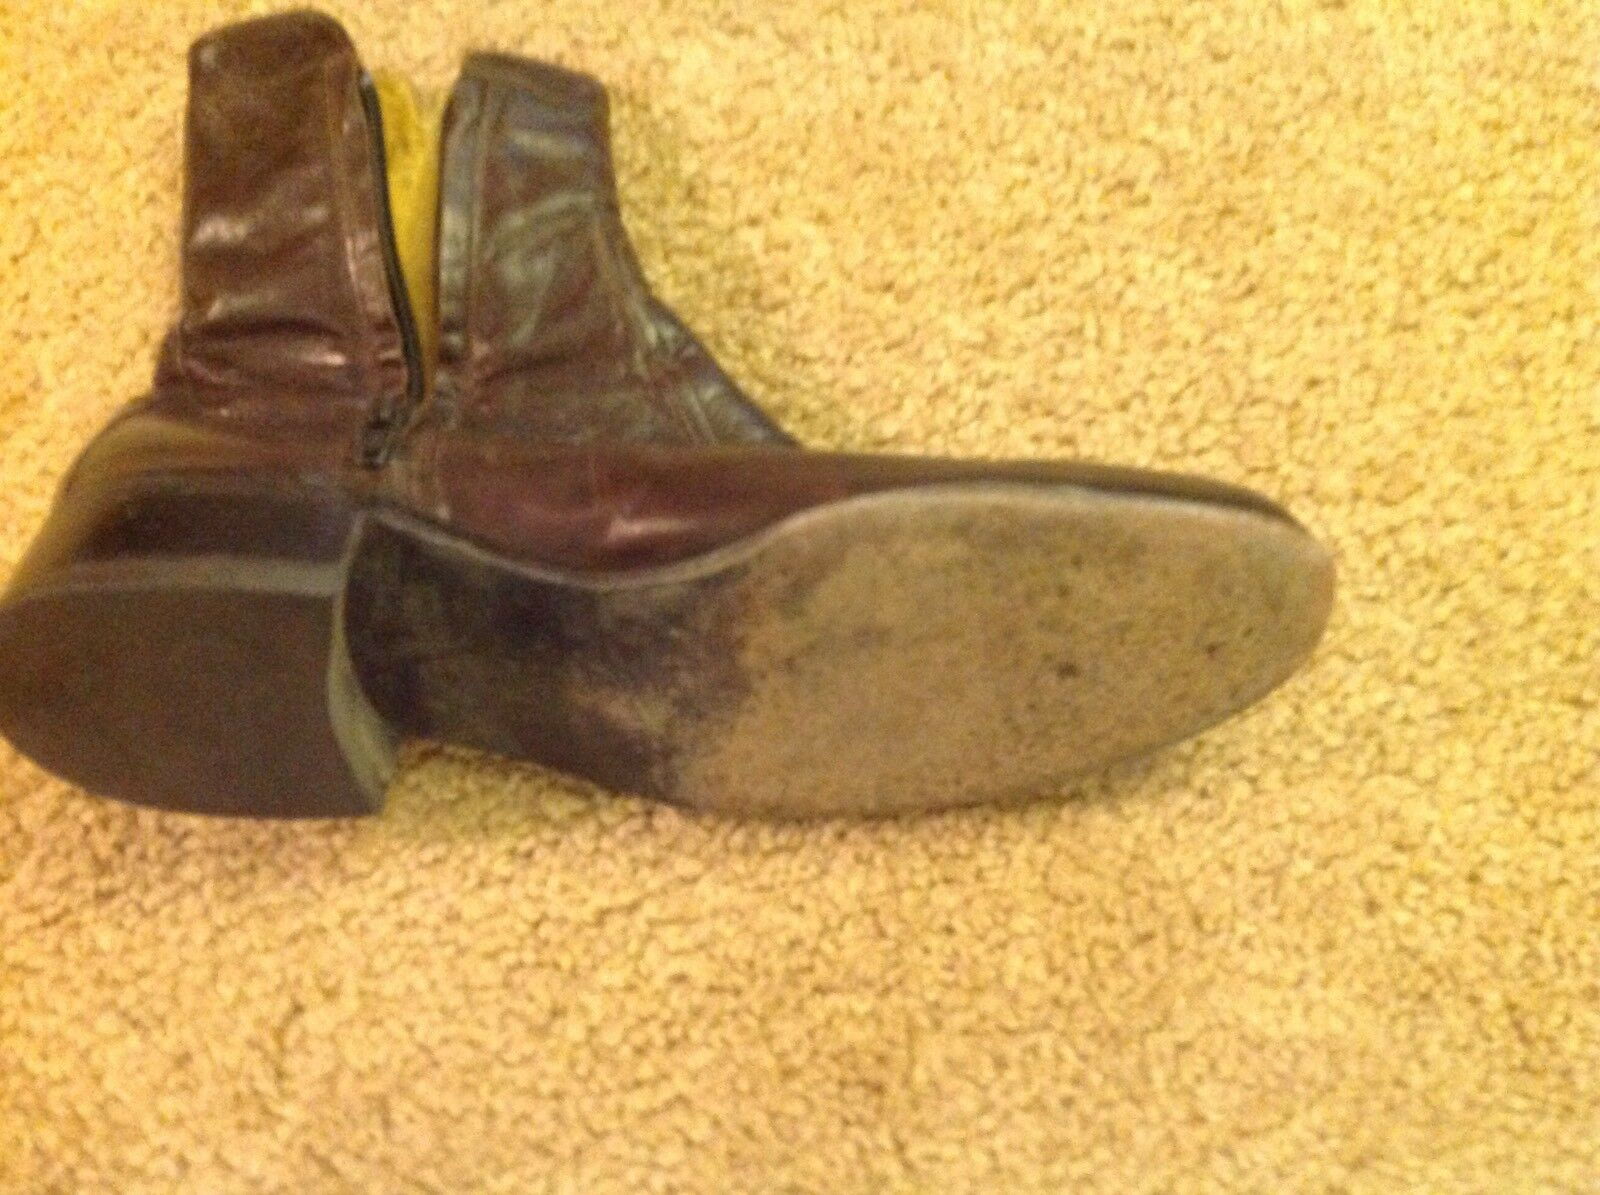 Men's Brown leather Ankle Boots Size 6.5 Very Good Preowned Condition